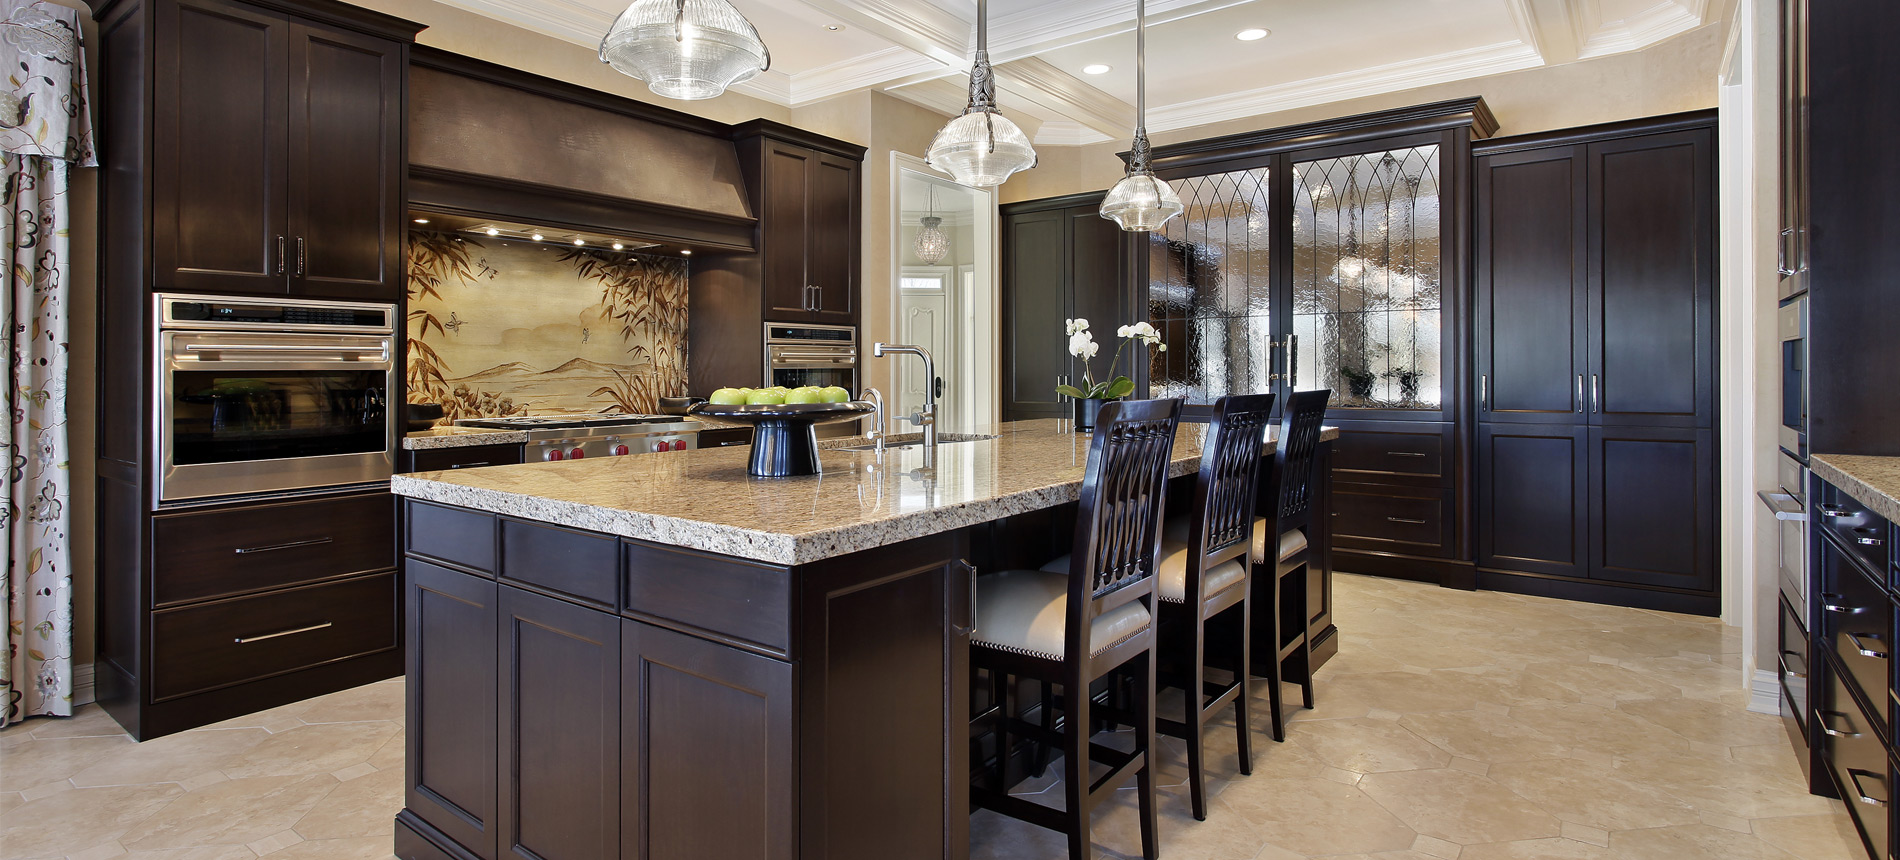 images of remodeled kitchens kitchen console table الوان مطابخ 2017 تركي بديكورات مودرن حديثة   سوبر كايرو